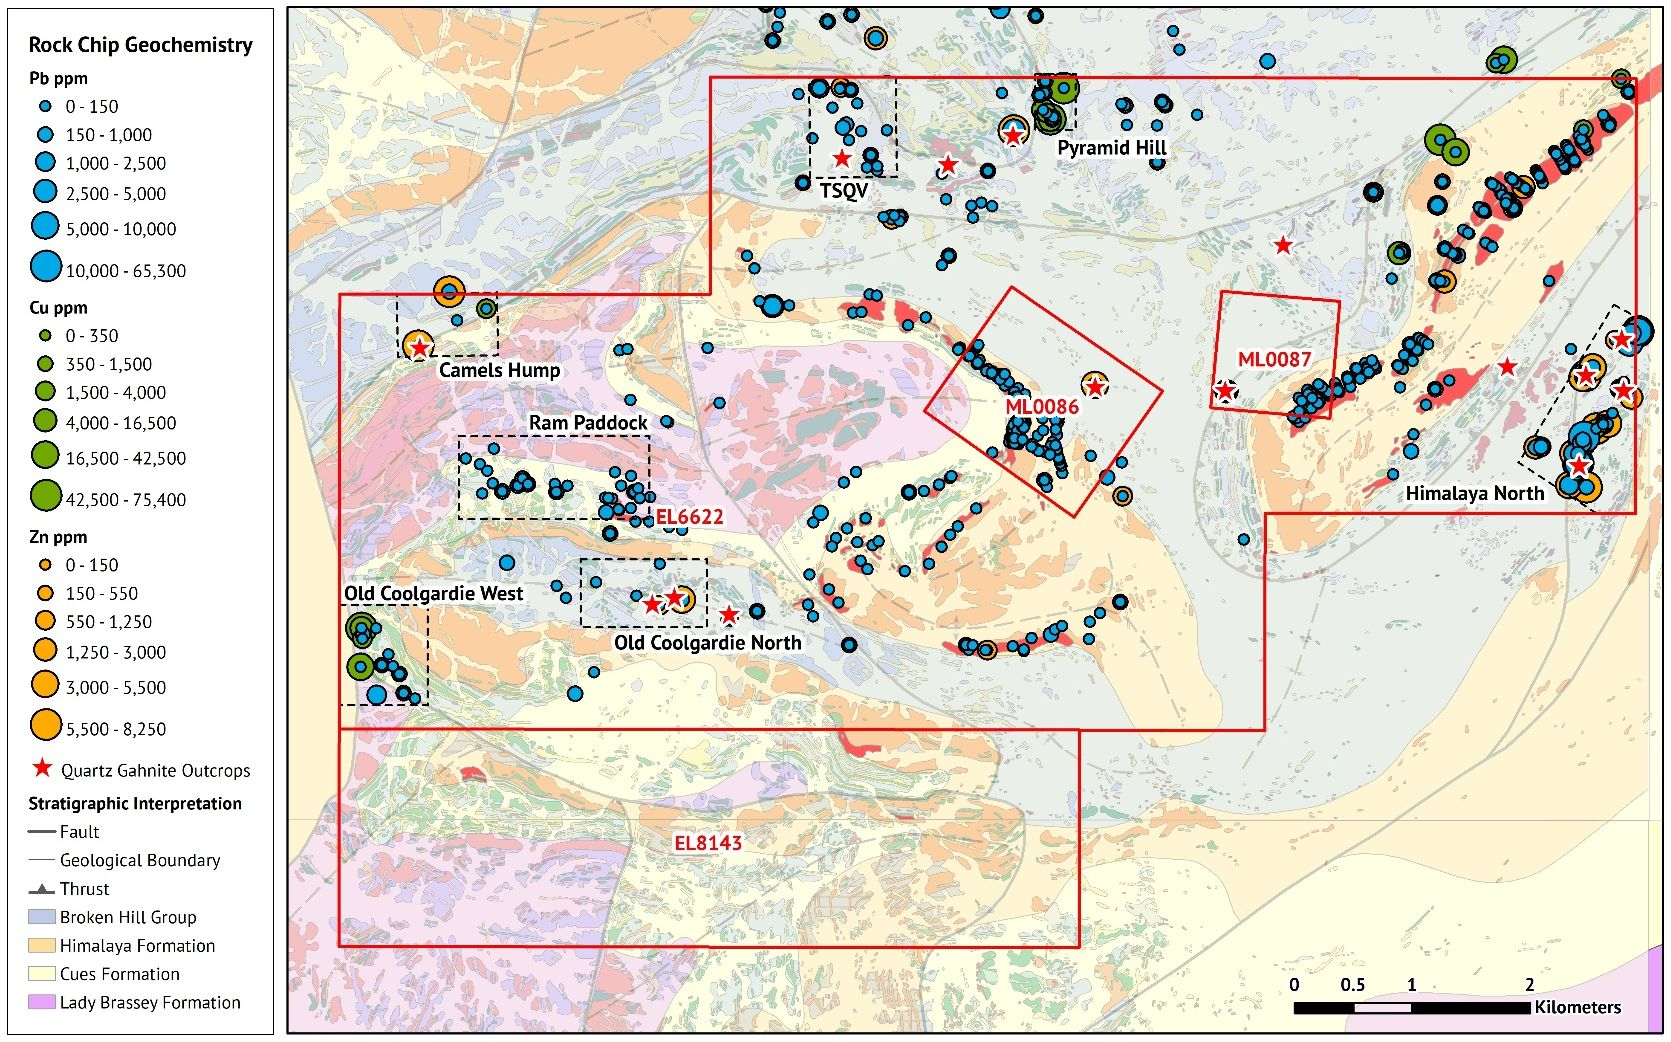 Figure 4. Thackaringa base and precious metal targets defined by regional rock chip geochemistry (Pb, Cu & Zn), and quartz–gahnite outcrops which are a key vector for Broken Hill style ore deposits